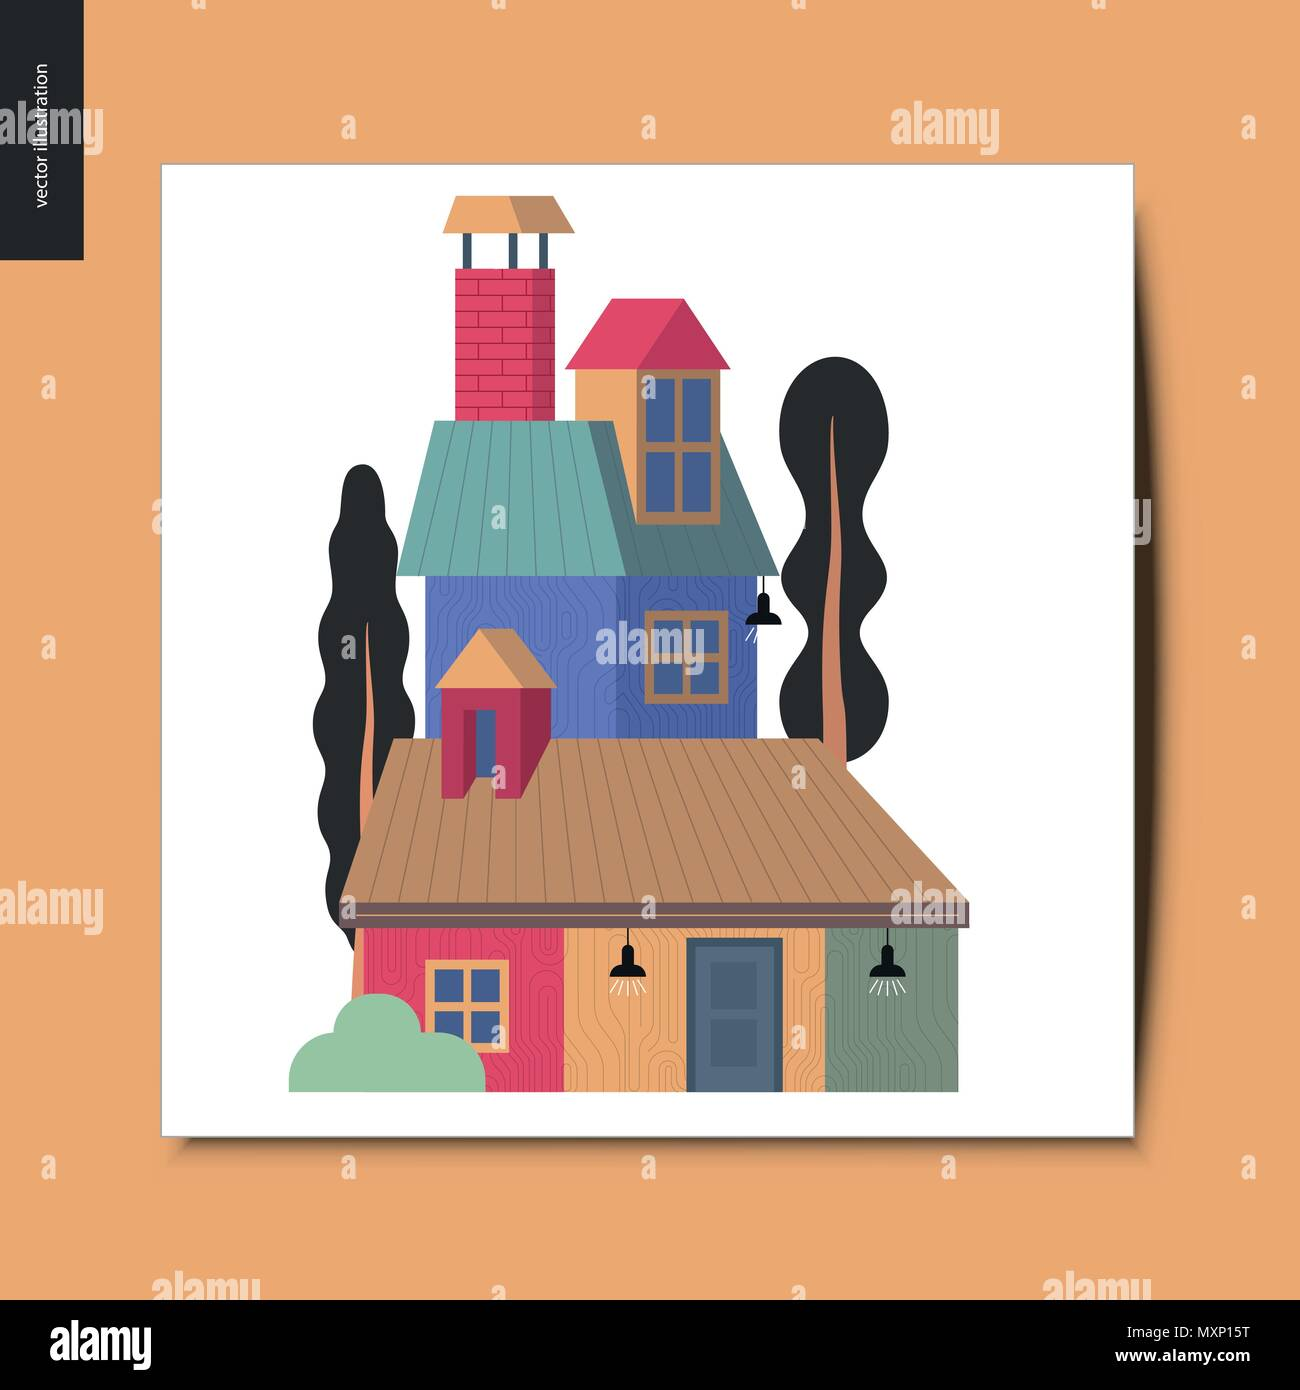 Simple Things House Flat Cartoon Vector Illustration Of A Colorful Countryside House With A Chimney Attic Roof Space And Tall Trees Around It A Stock Vector Image Art Alamy